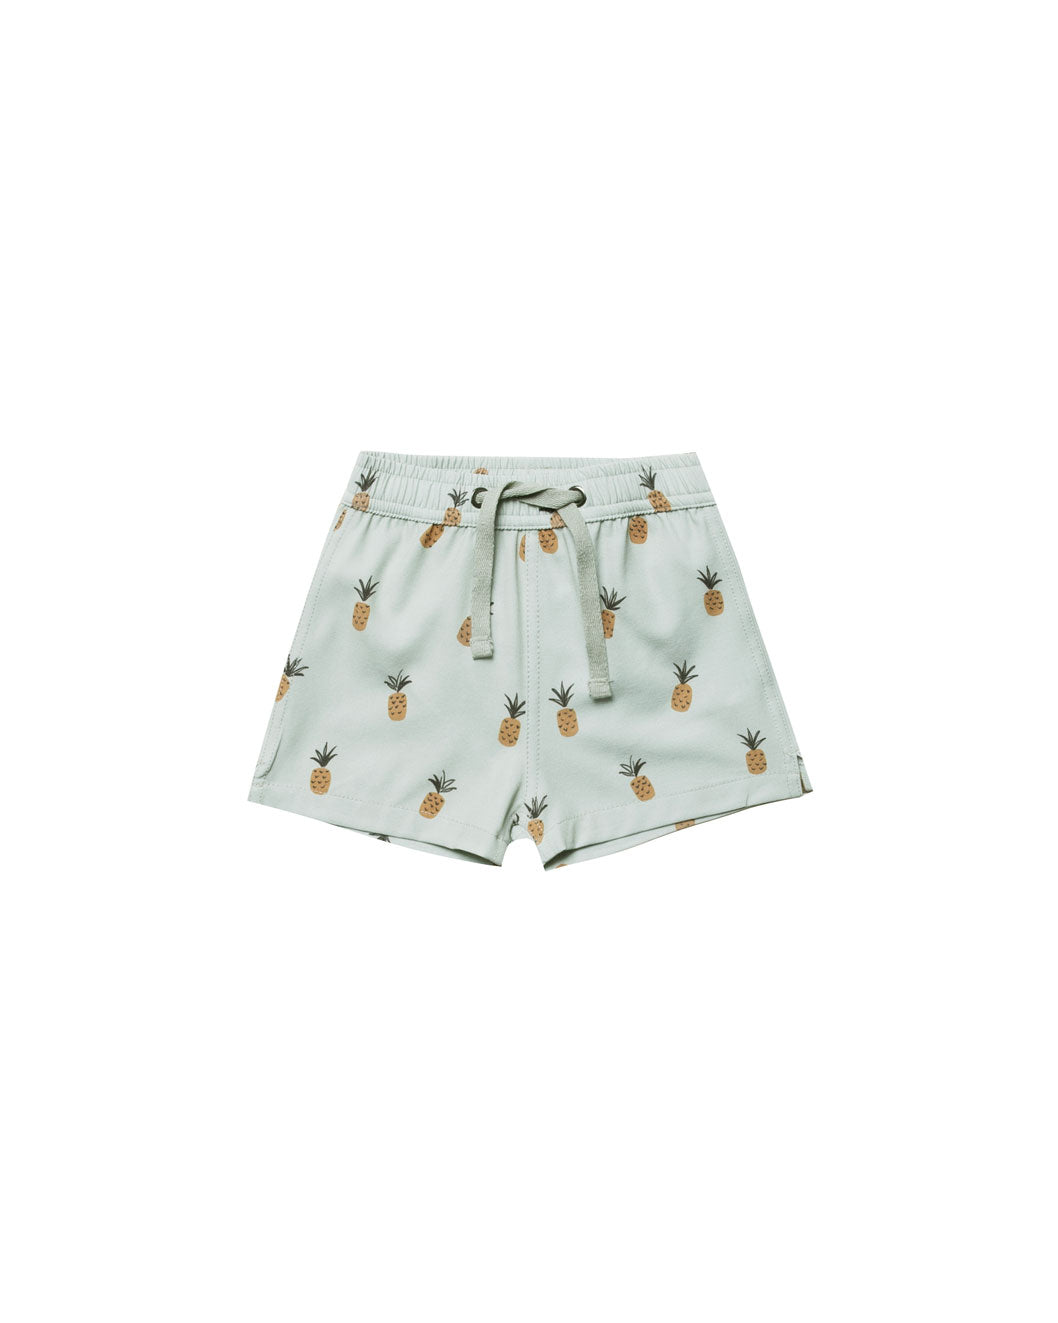 Rylee and Cru Seafoam Pineapples Swim Trunks